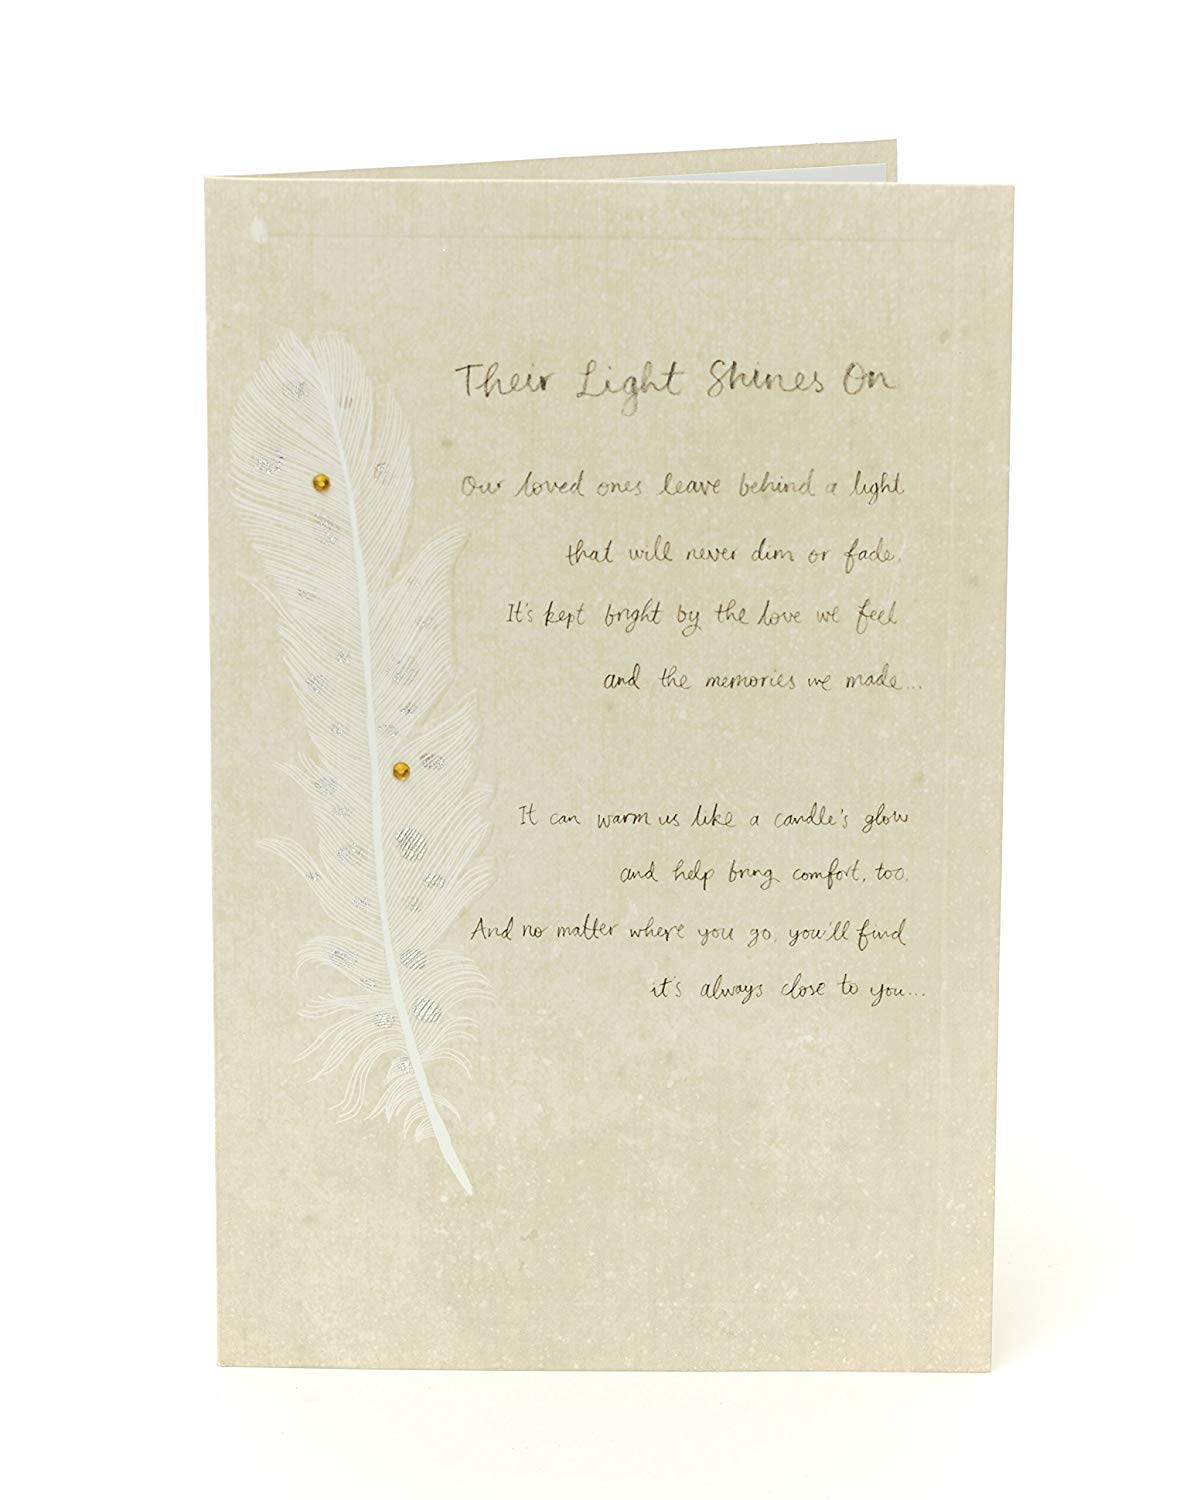 Inspirational Card Sympathy Card Bereavement Card Thinking of You Card Sorry for Your Loss Cards Condolence Card